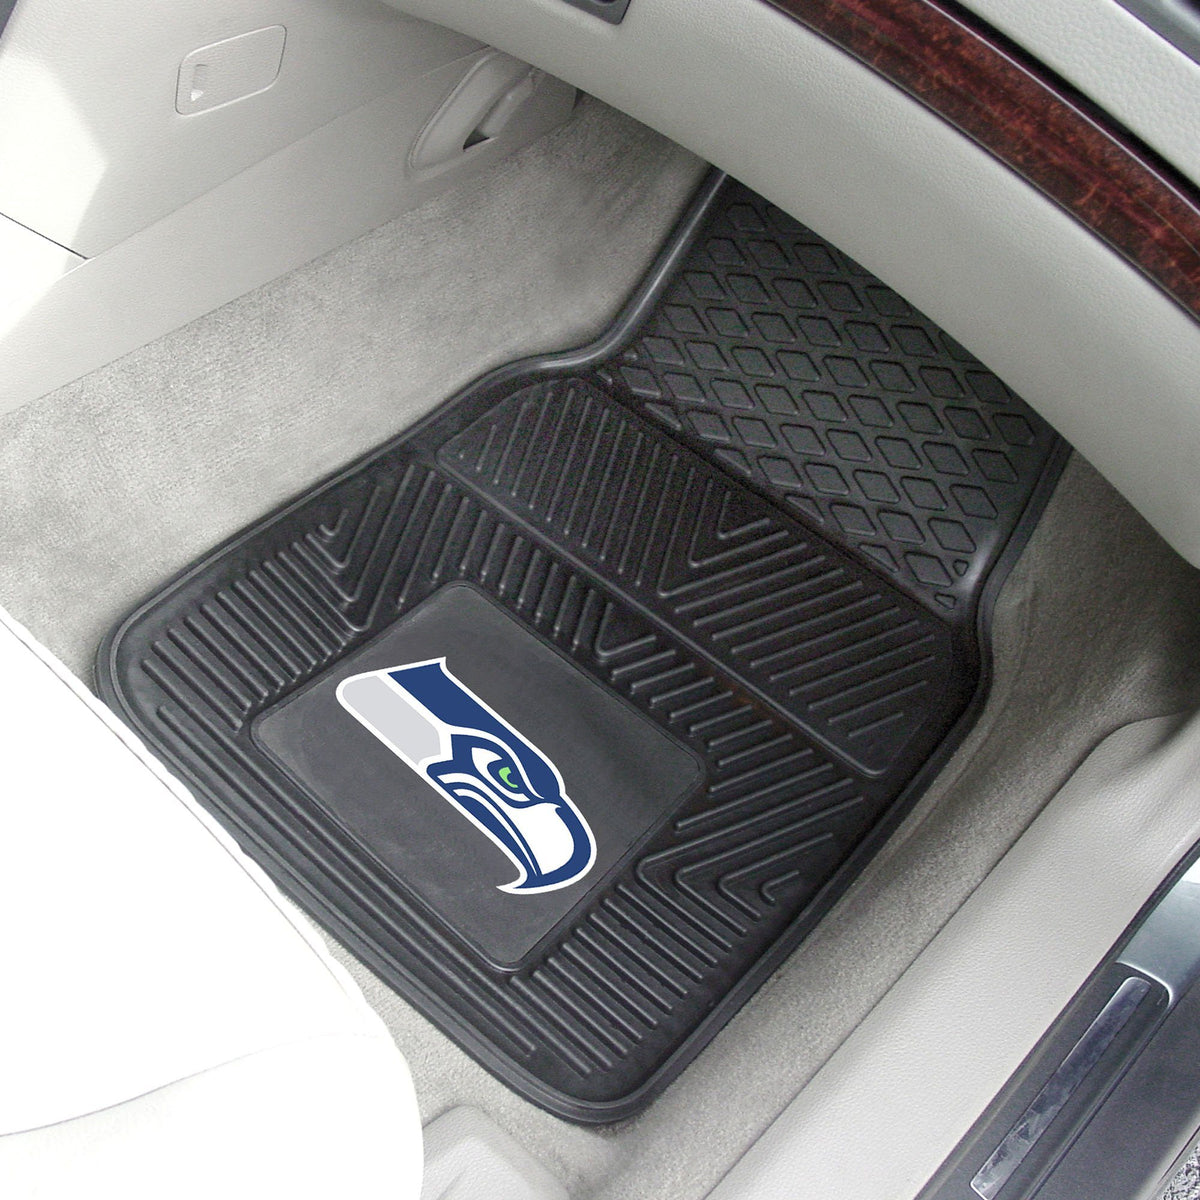 NFL - 2-pc Vinyl Car Mat Set NFL Mats, Front Car Mats, 2-pc Vinyl Car Mat Set, NFL, Auto Fan Mats Seattle Seahawks